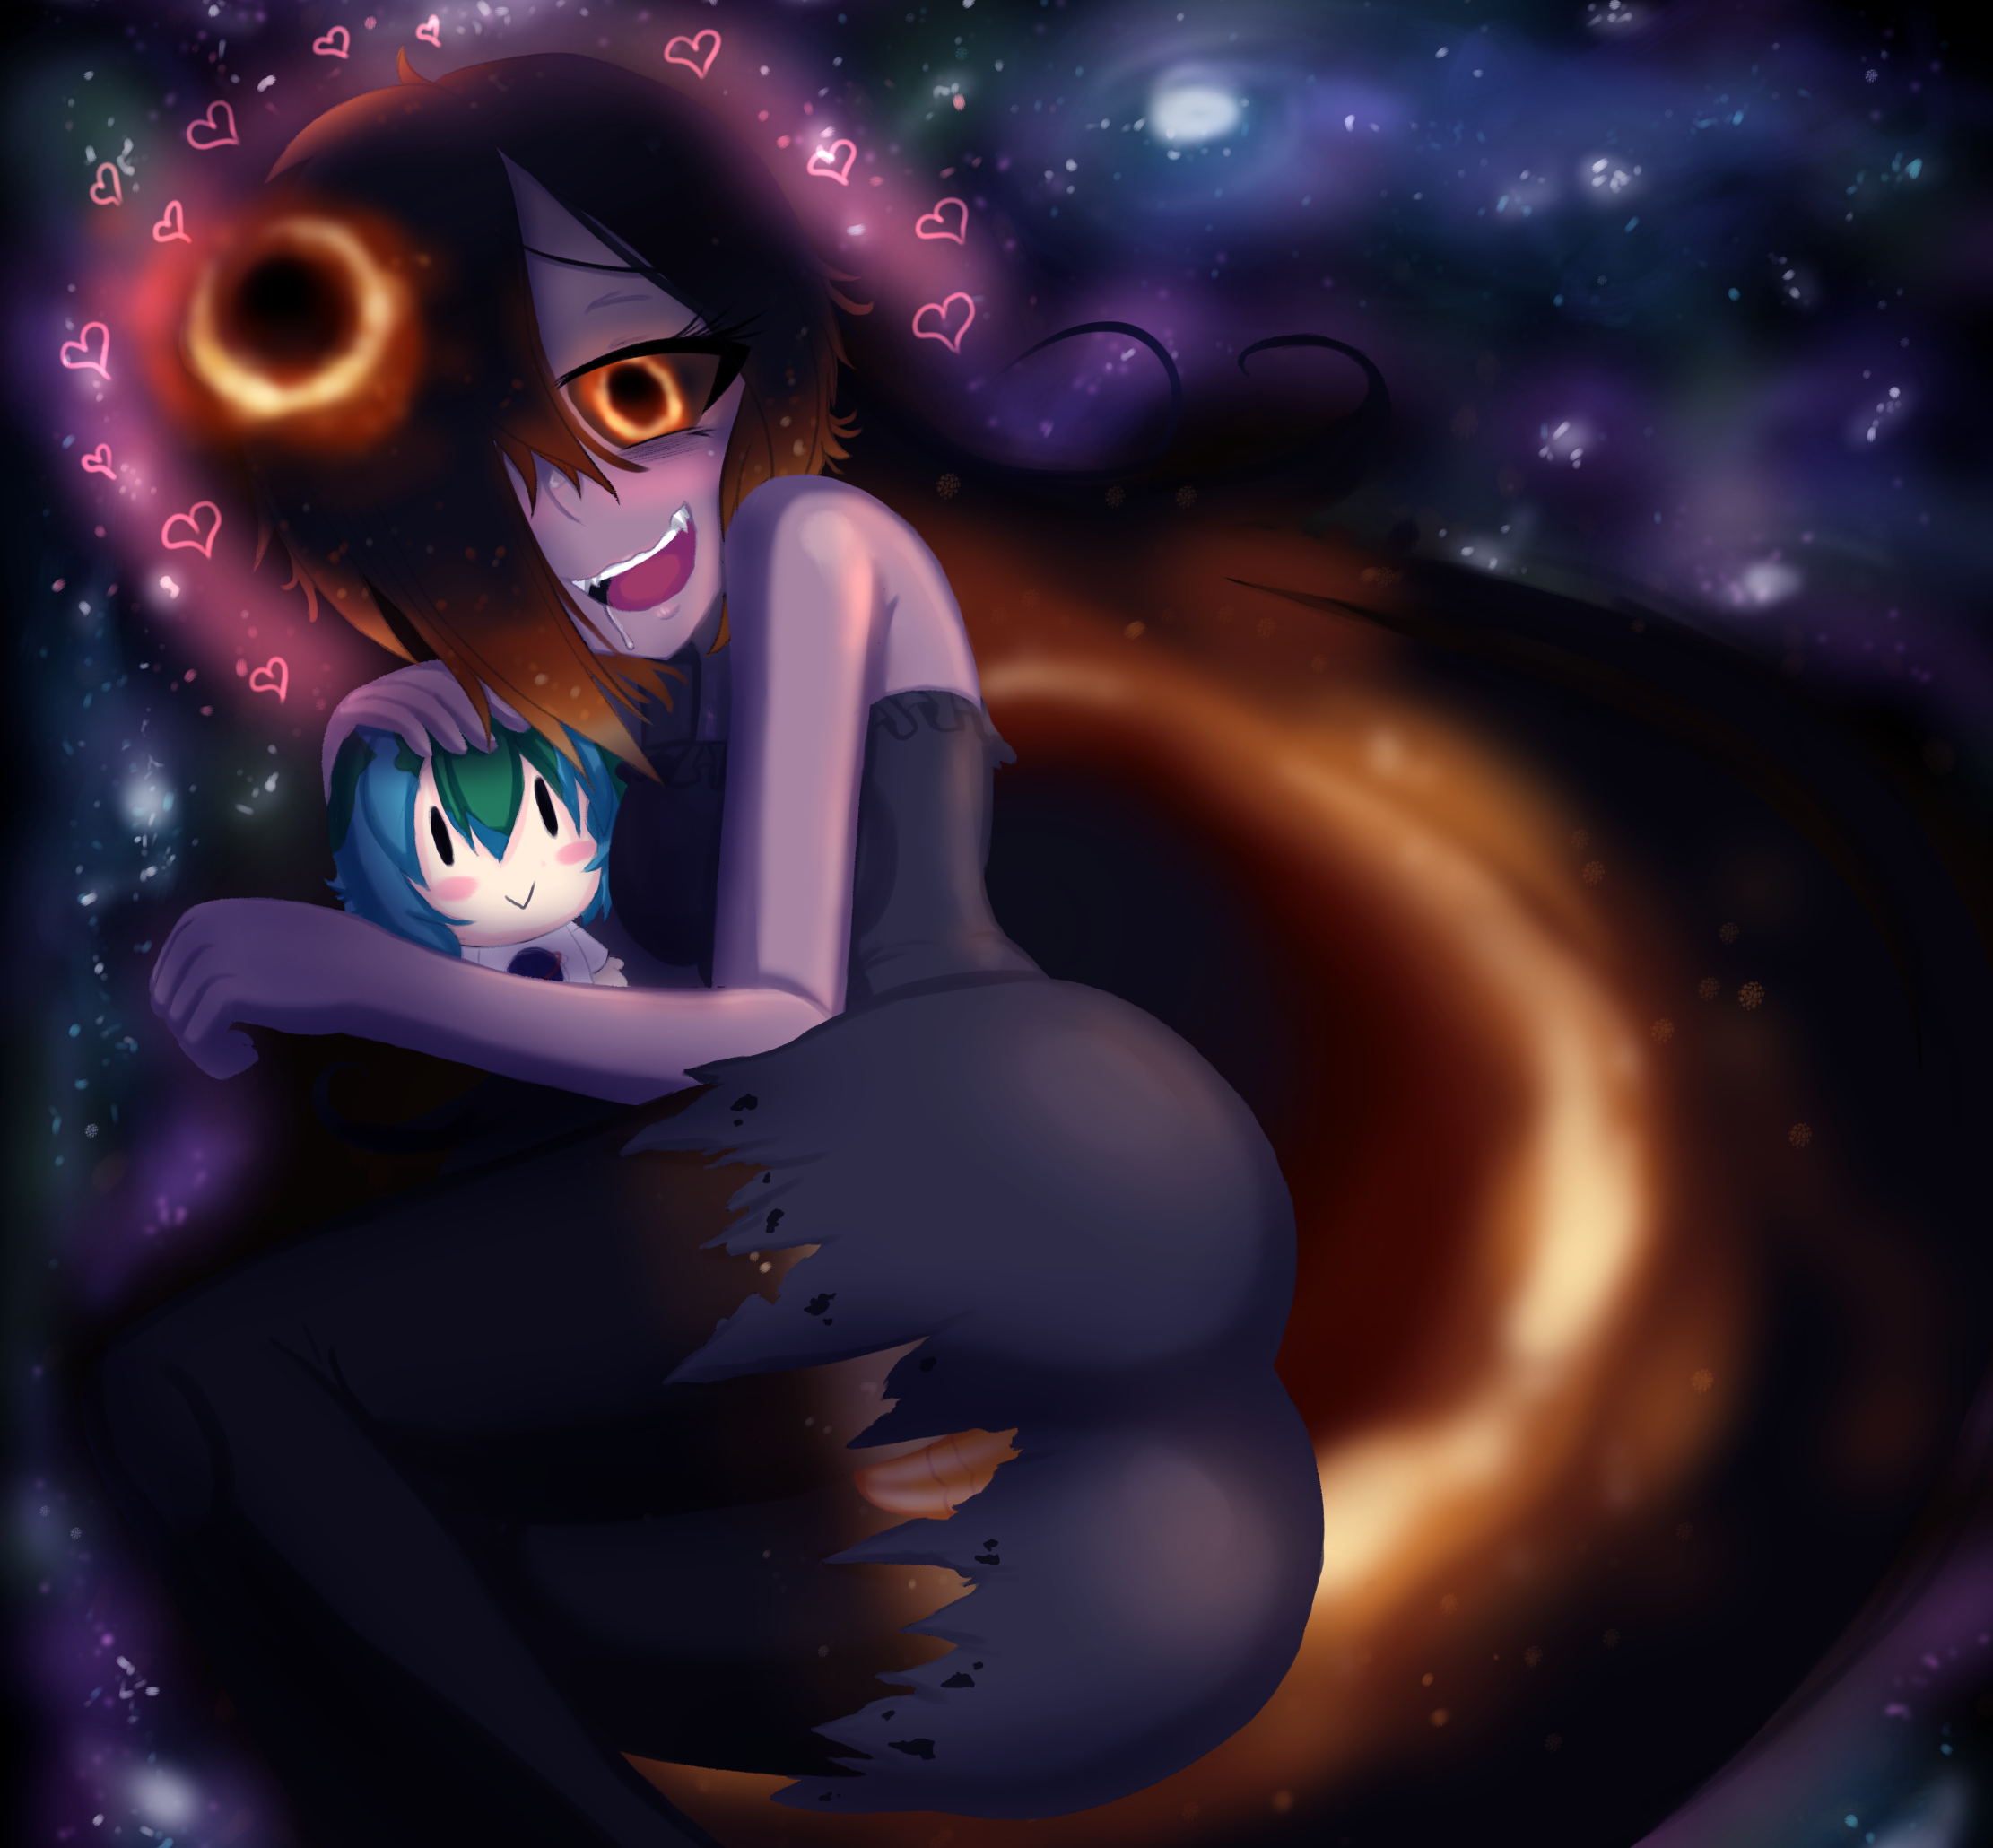 Blackhole-chan Snuggles by Undefined404 on Newgrounds